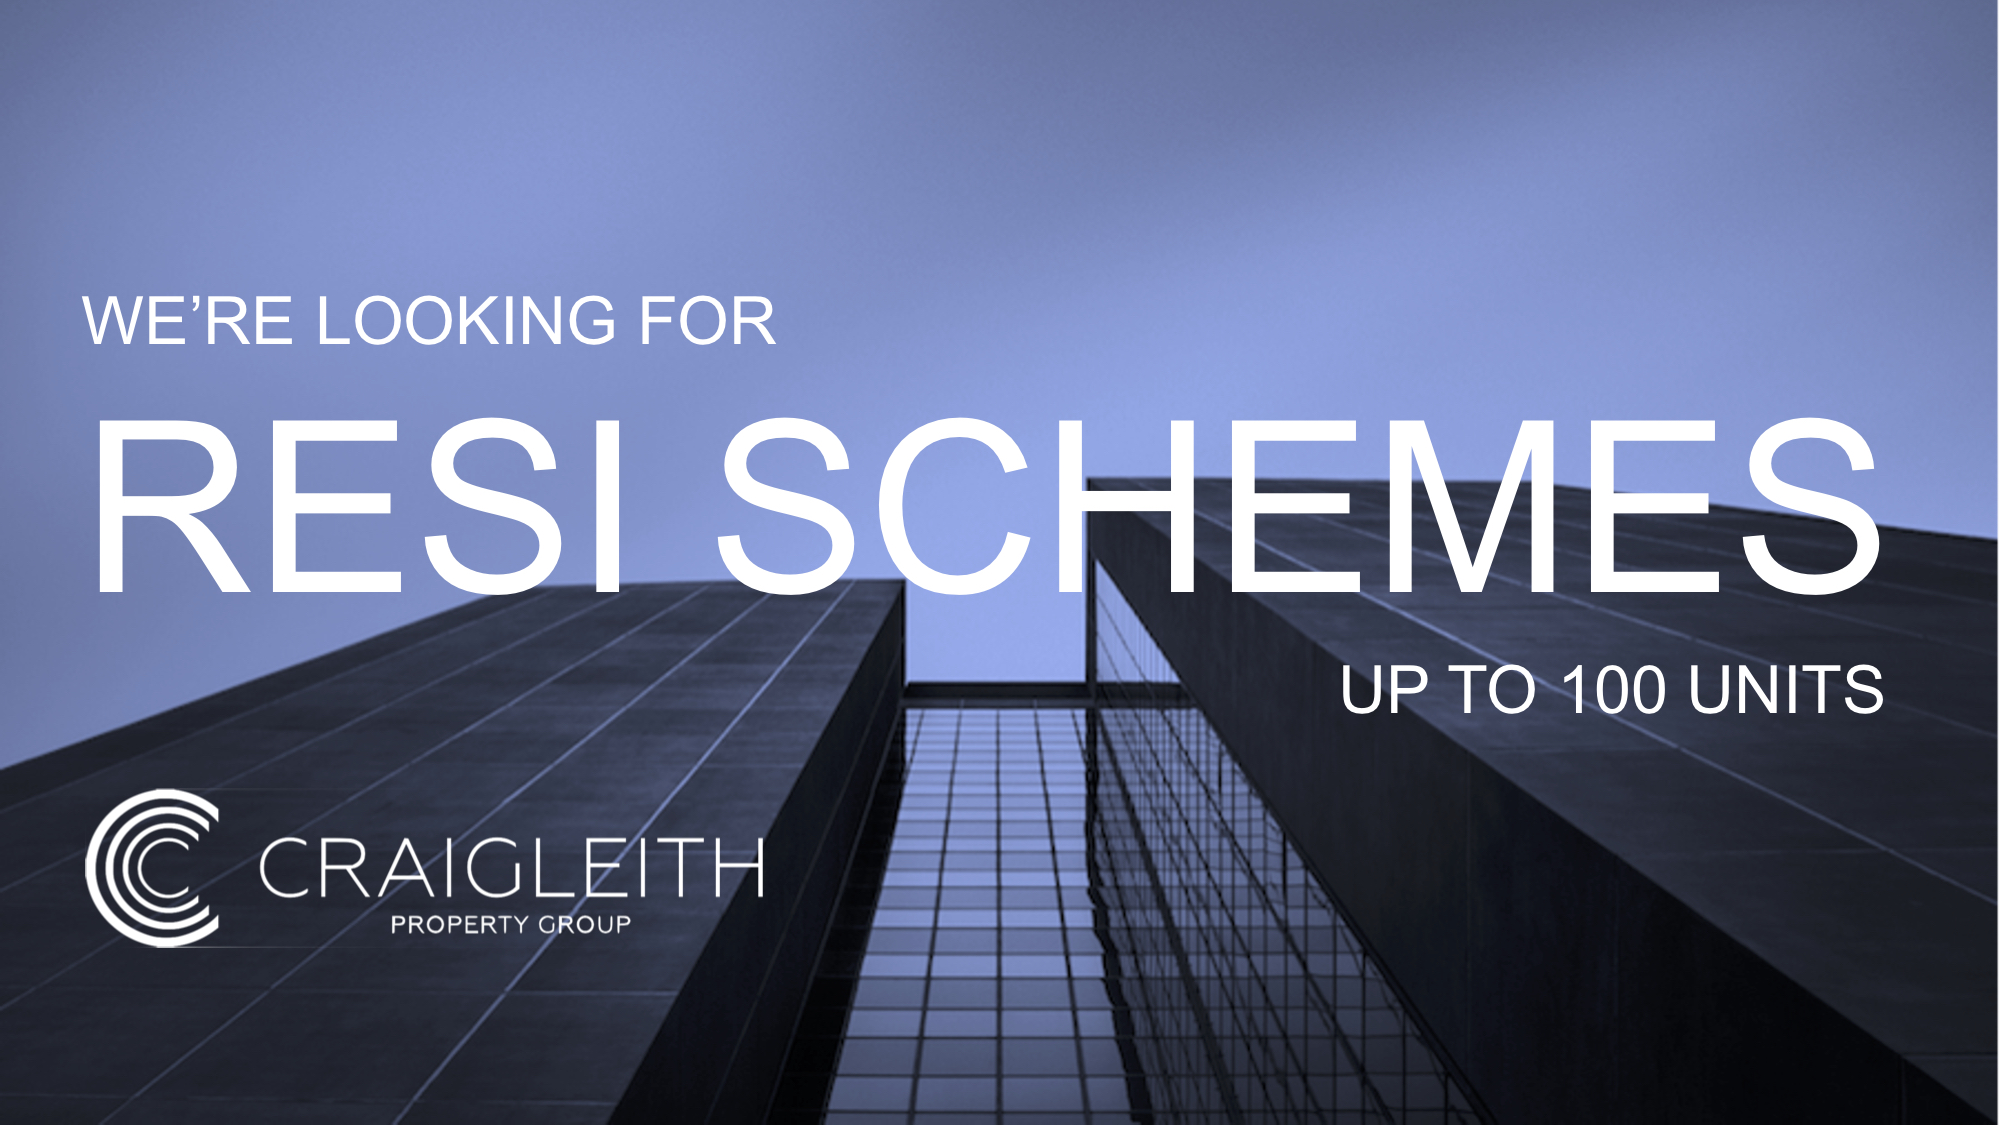 Resi schemes required - up to 100 units.